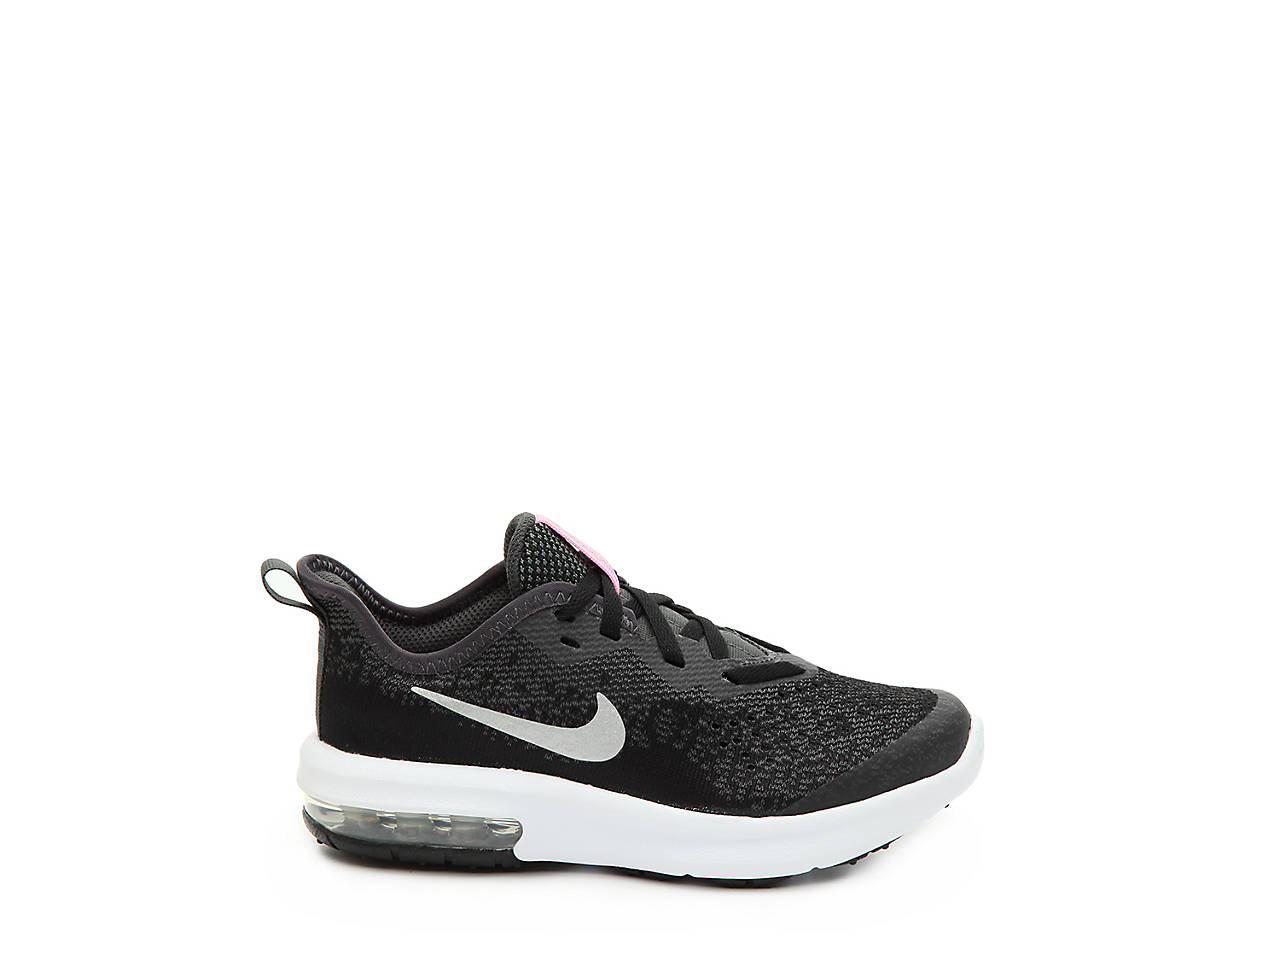 961f5f2ab528c Nike Air Max Sequent 4 Toddler   Youth Running Shoe Kids Shoes